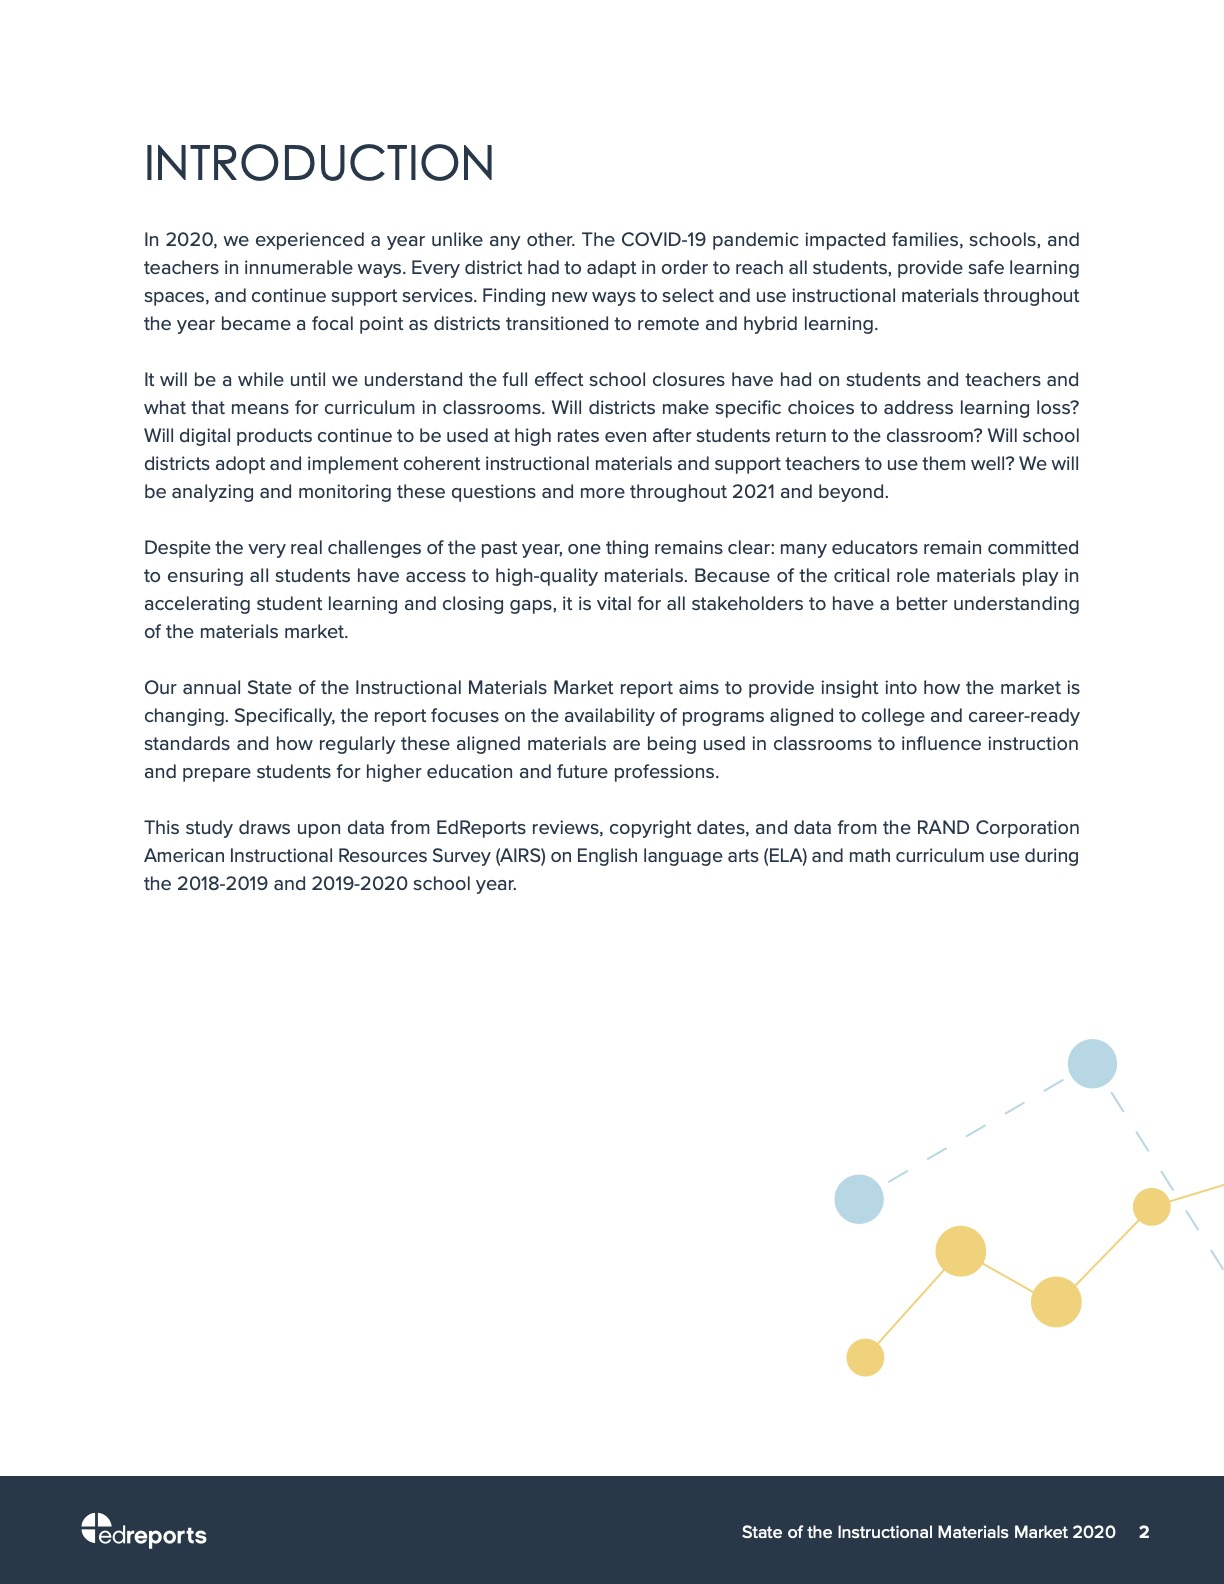 EdReports-2020-State-of-the-Market-Use-of-Aligned-Materials_FIN_2.jpg